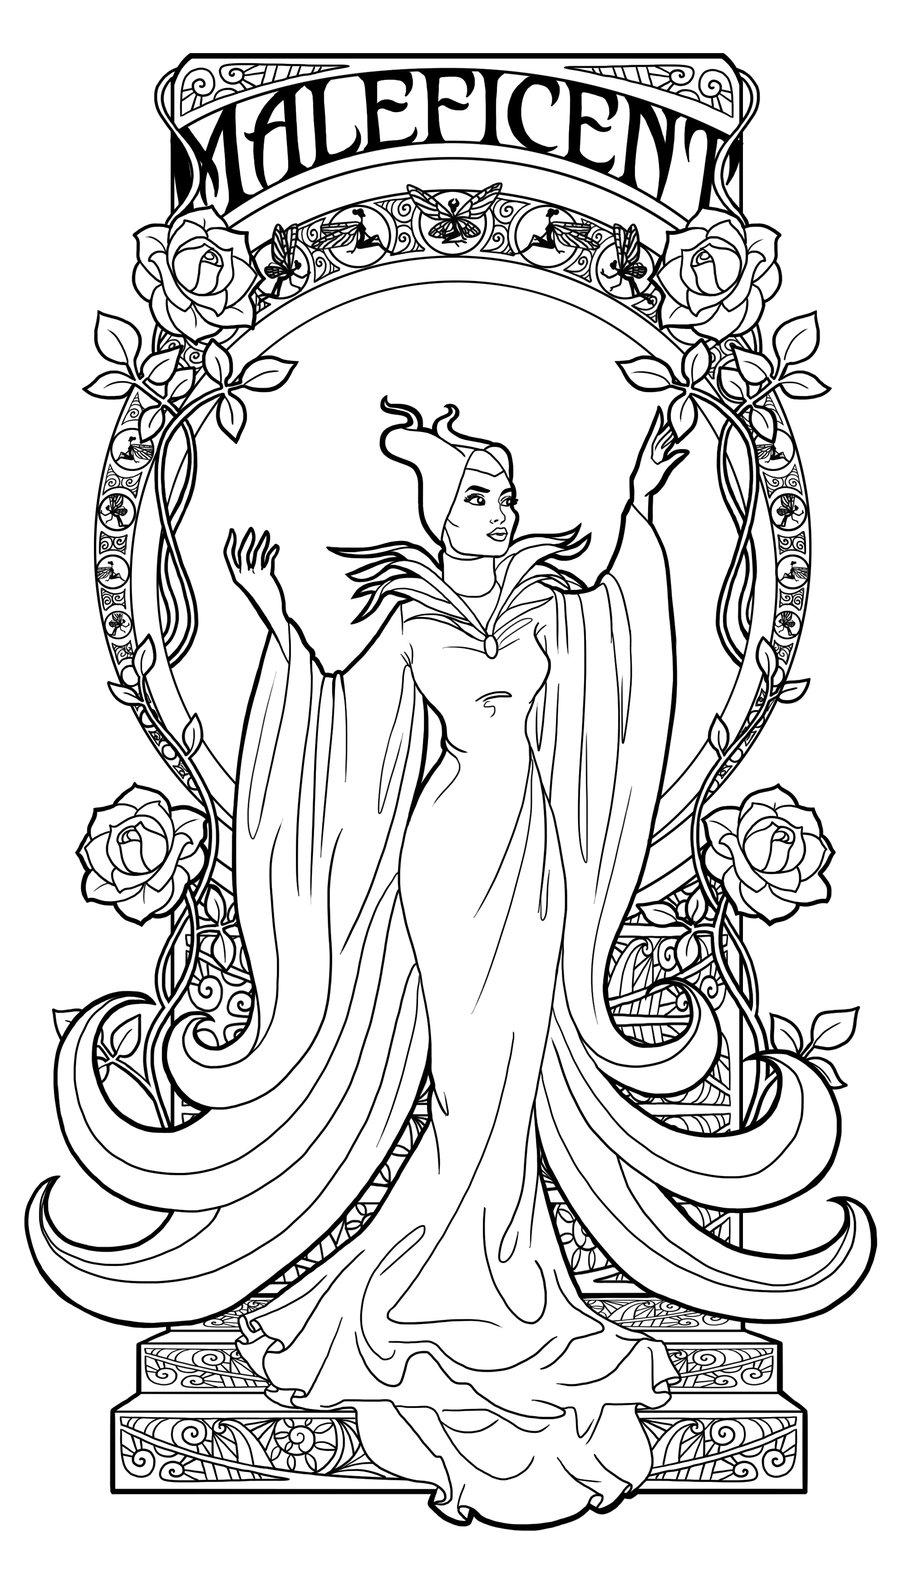 Art Nouveau Drawing at GetDrawings.com | Free for personal use Art ...